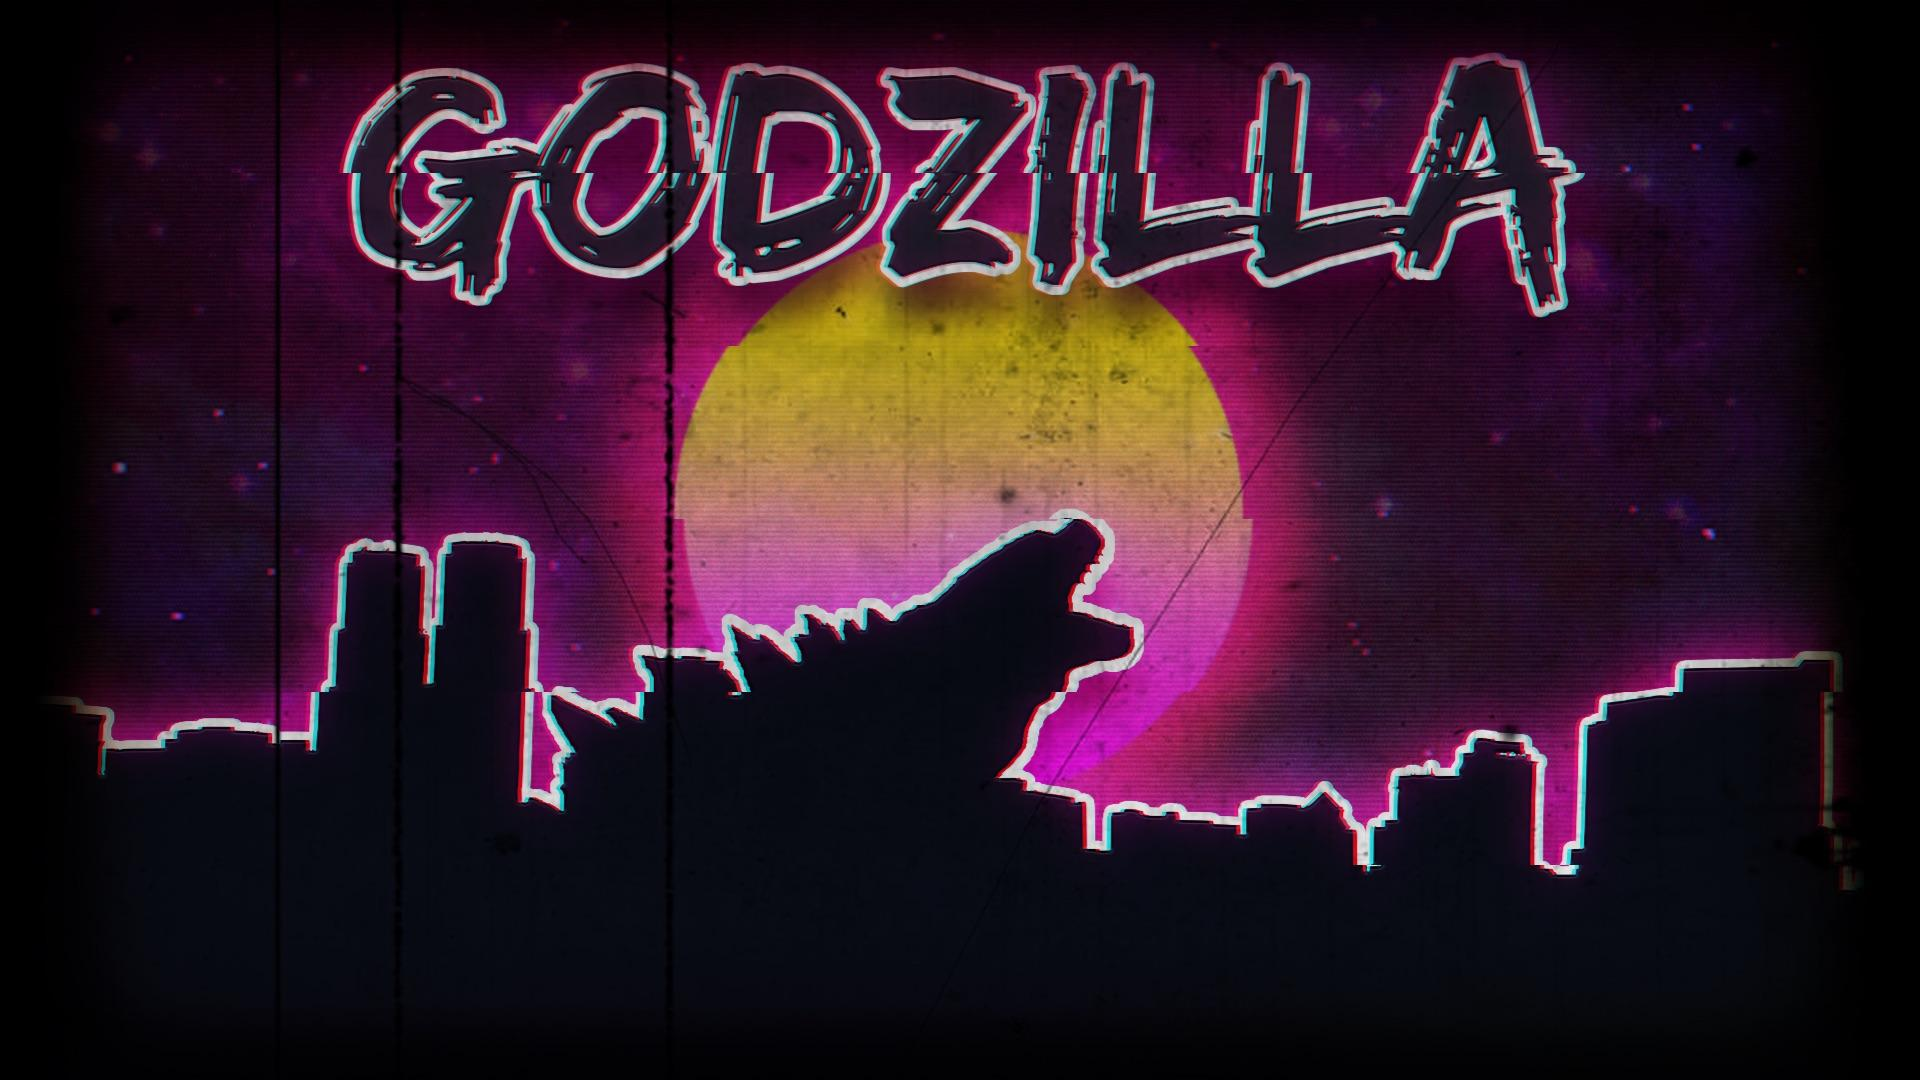 A-retro-s-style-godzilla-I-threw-together-in-photoshop-1920x1080-wallpaper-wp3602103